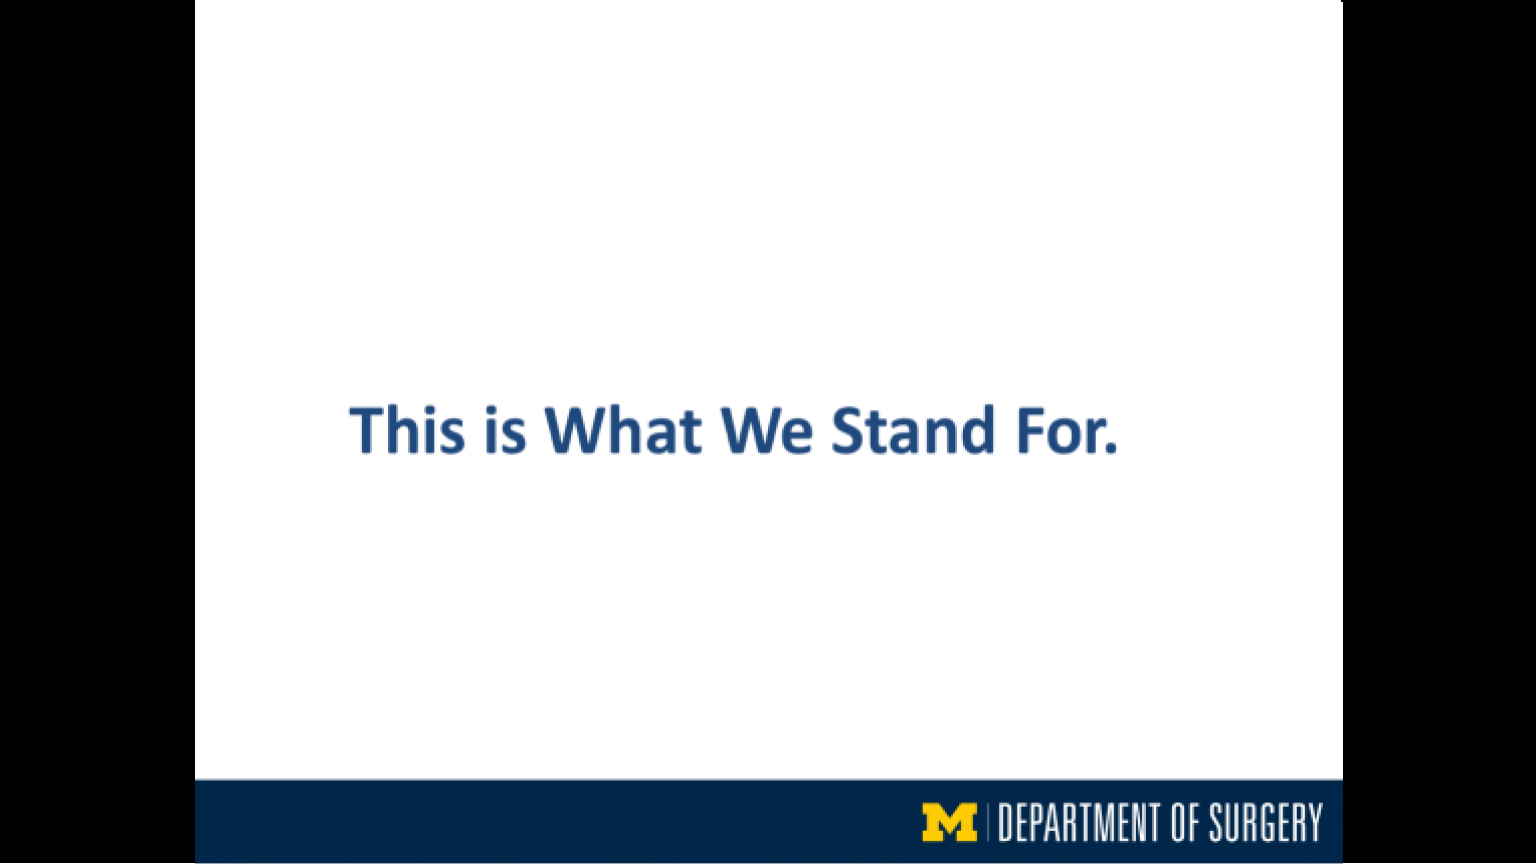 """""""This Is What We Stand For"""" - fortieth slide of """"This Is What We Stand For"""" presentation"""